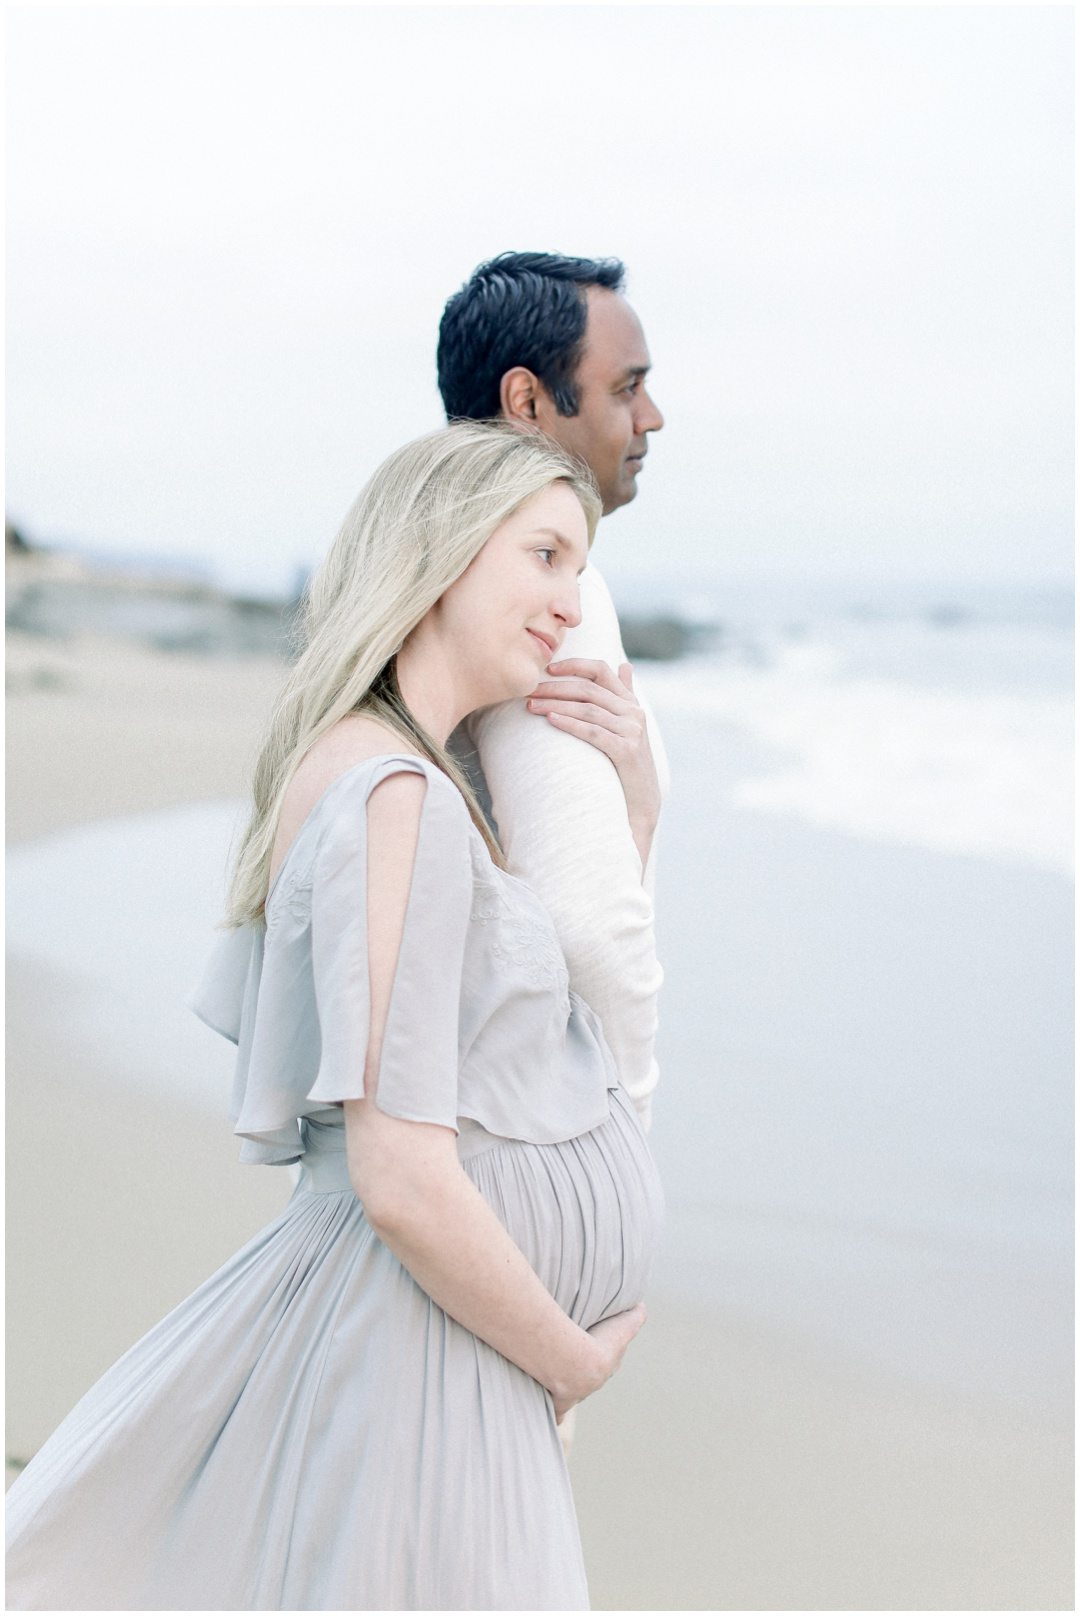 Newport_Beach_Newborn_Light_Airy_Natural_Photographer_Newport_Beach_Photographer_Orange_County_Family_Photographer_Cori_Kleckner_Photography_Huntington_Beach_Photographer_Family_OC_Maternity_Jennifer_Spohn_Rahul_Spohn_3637.jpg